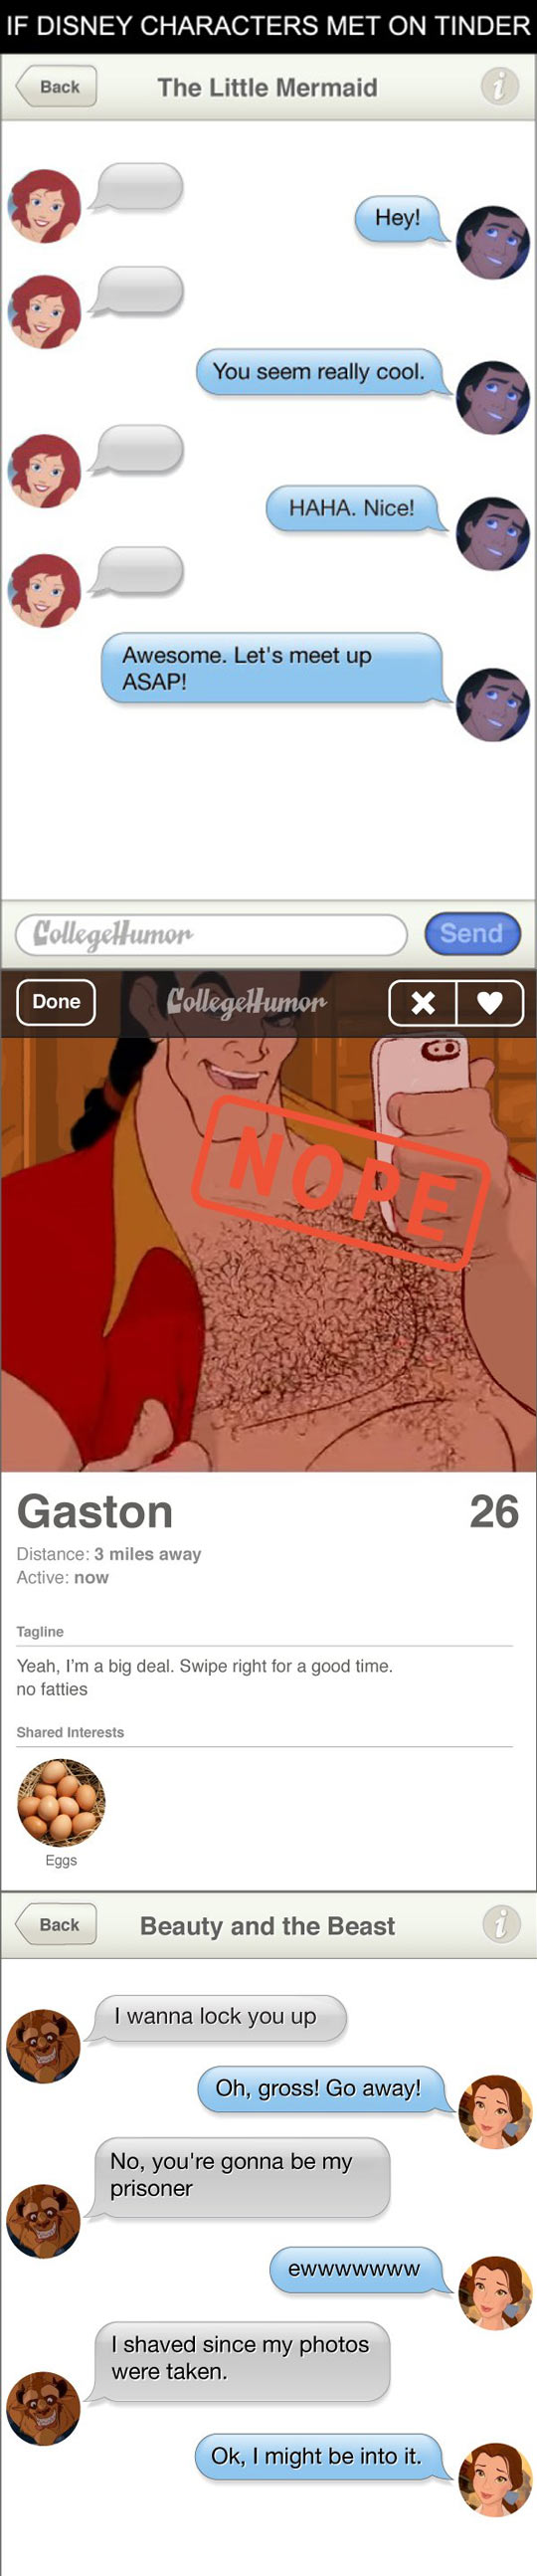 Disney Characters On Tinder